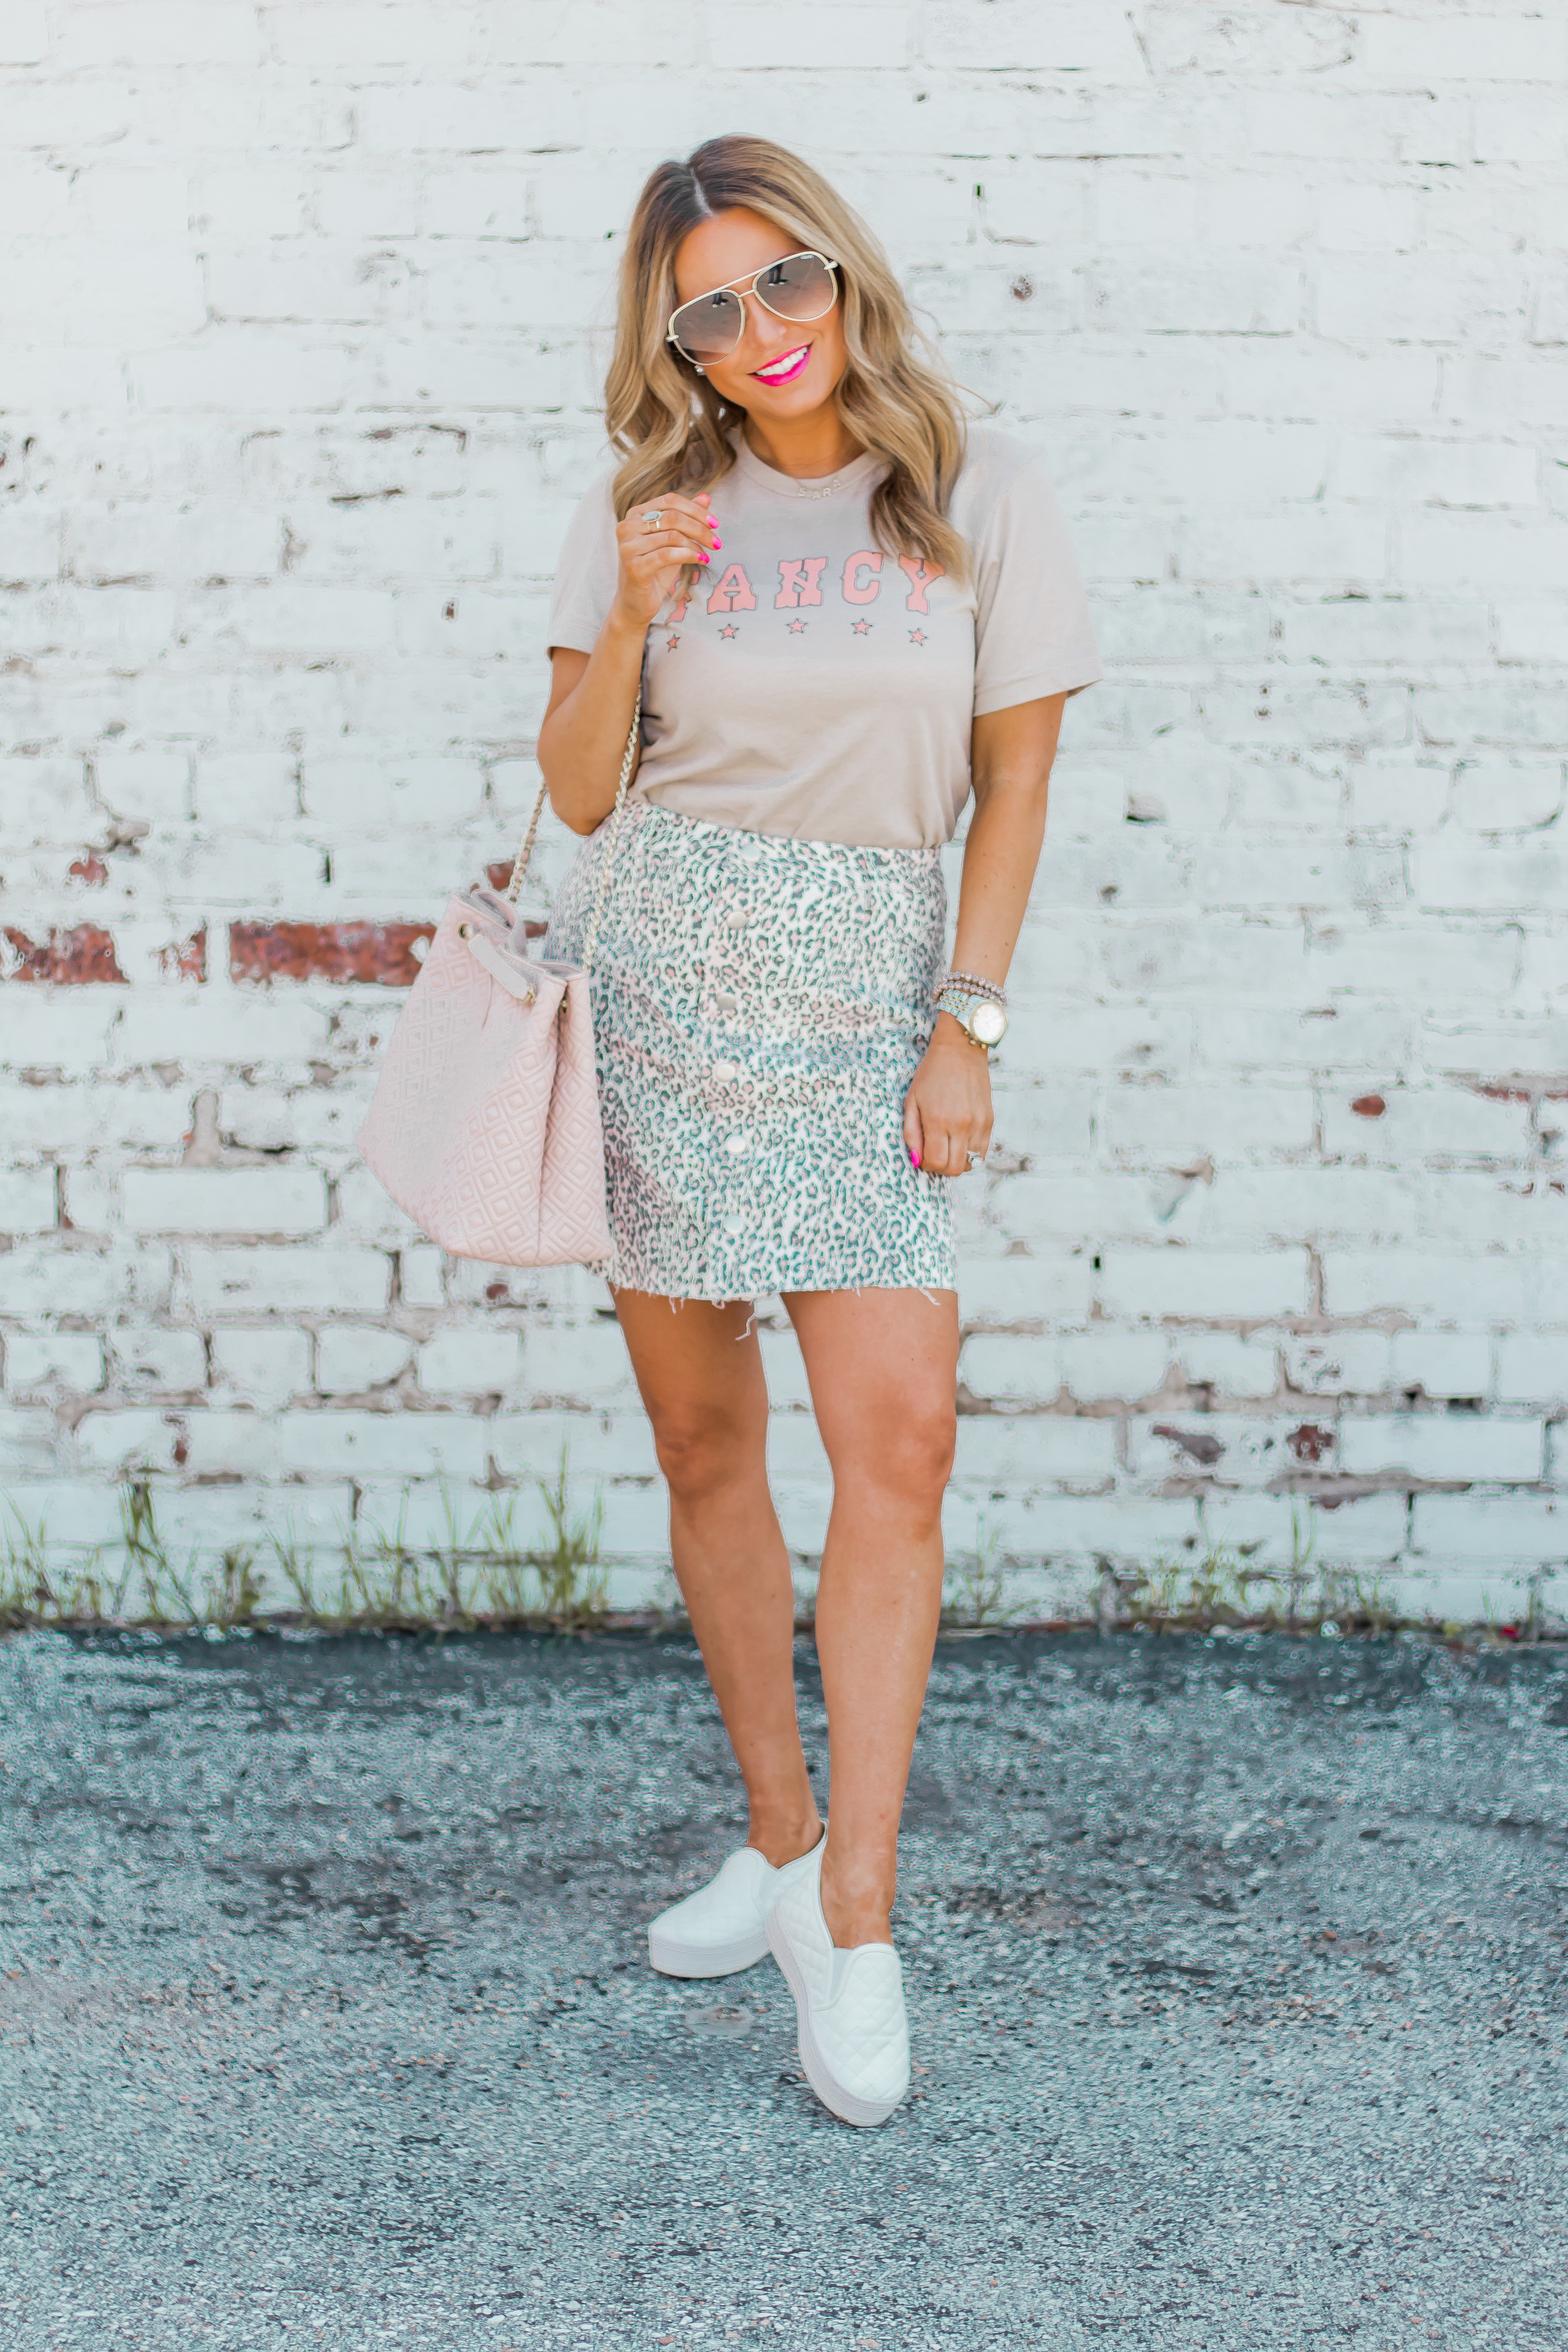 Fancy Graphic Tee-Leopard Skirt-Sugar Boutique-$250 Gift Card Giveaway-Tory Burch Fleming Bag-Quay Sunglasses-Sabby Style-Omaha Blogger-Women's Fashion-Spring Fashion-Summer Outfit-11